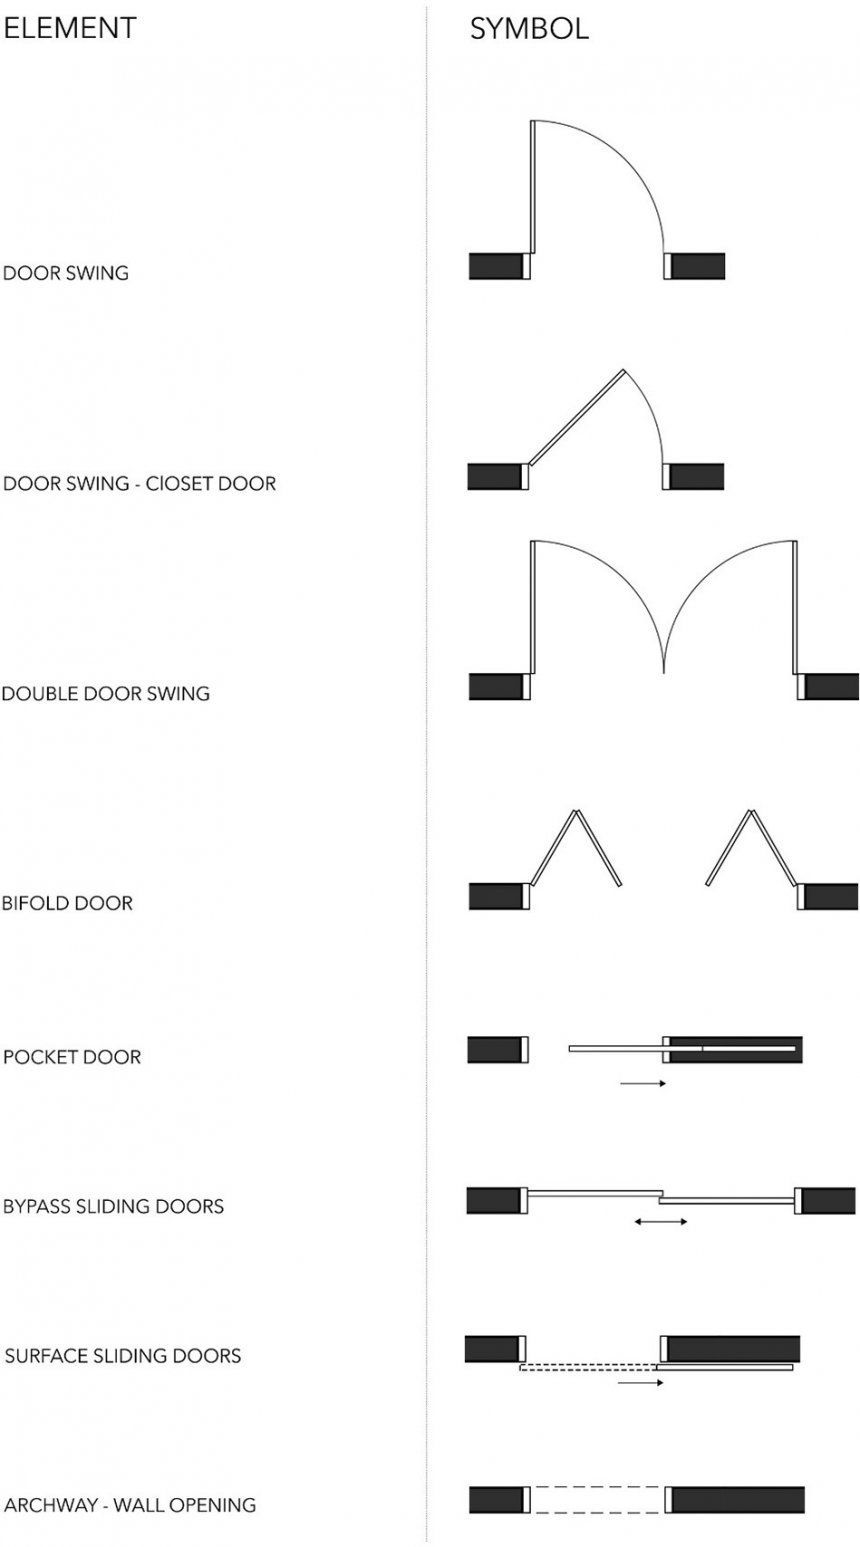 Basic Elements Of Interior Design Pdf Fancy Extra Deep Sofa In Raphaels Bar For In 2020 Floor Plan Symbols Interior Architecture Design Interior Design Sketches